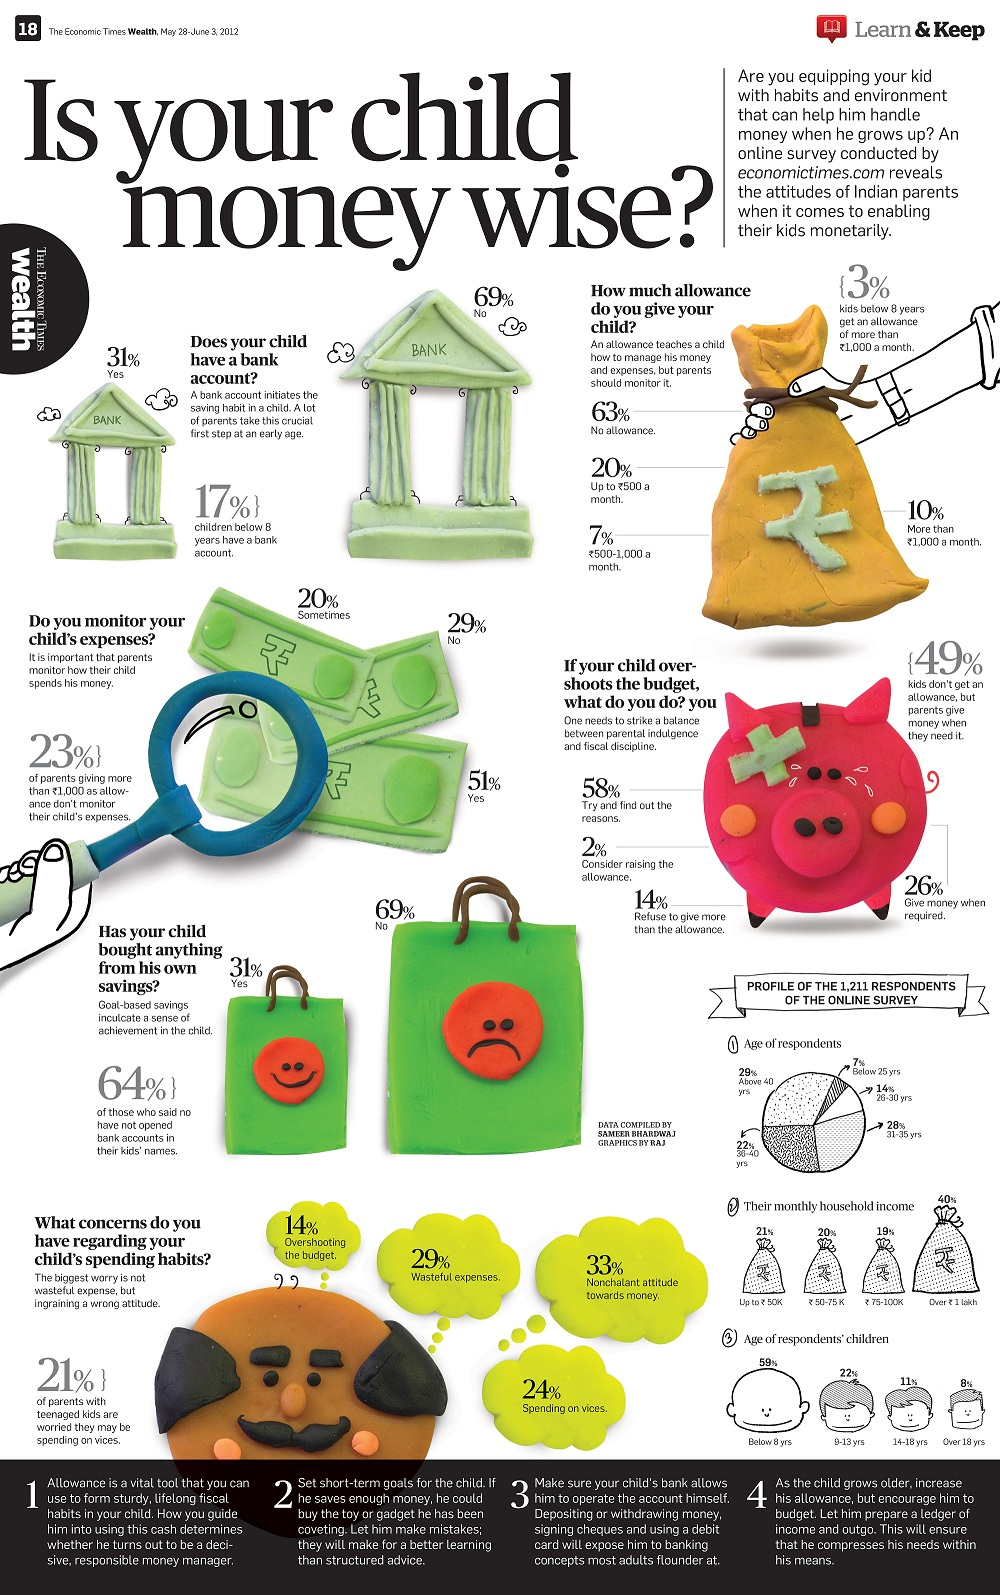 Source: The Economic Times Wealth, May 28-June 3, 2012